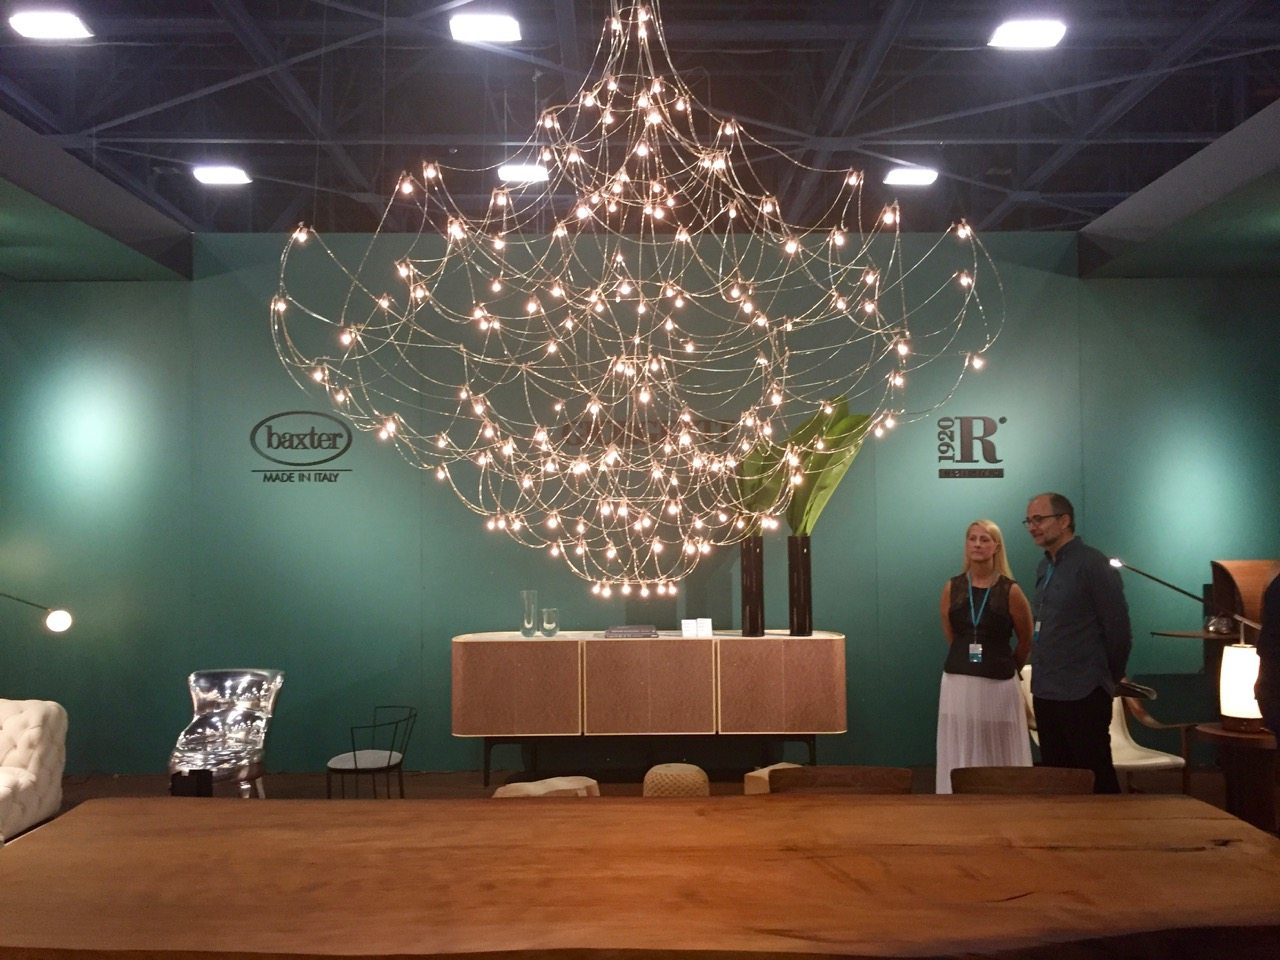 But Before All That Heres A First Look At Some Of The Design And Decor Inside Main Show